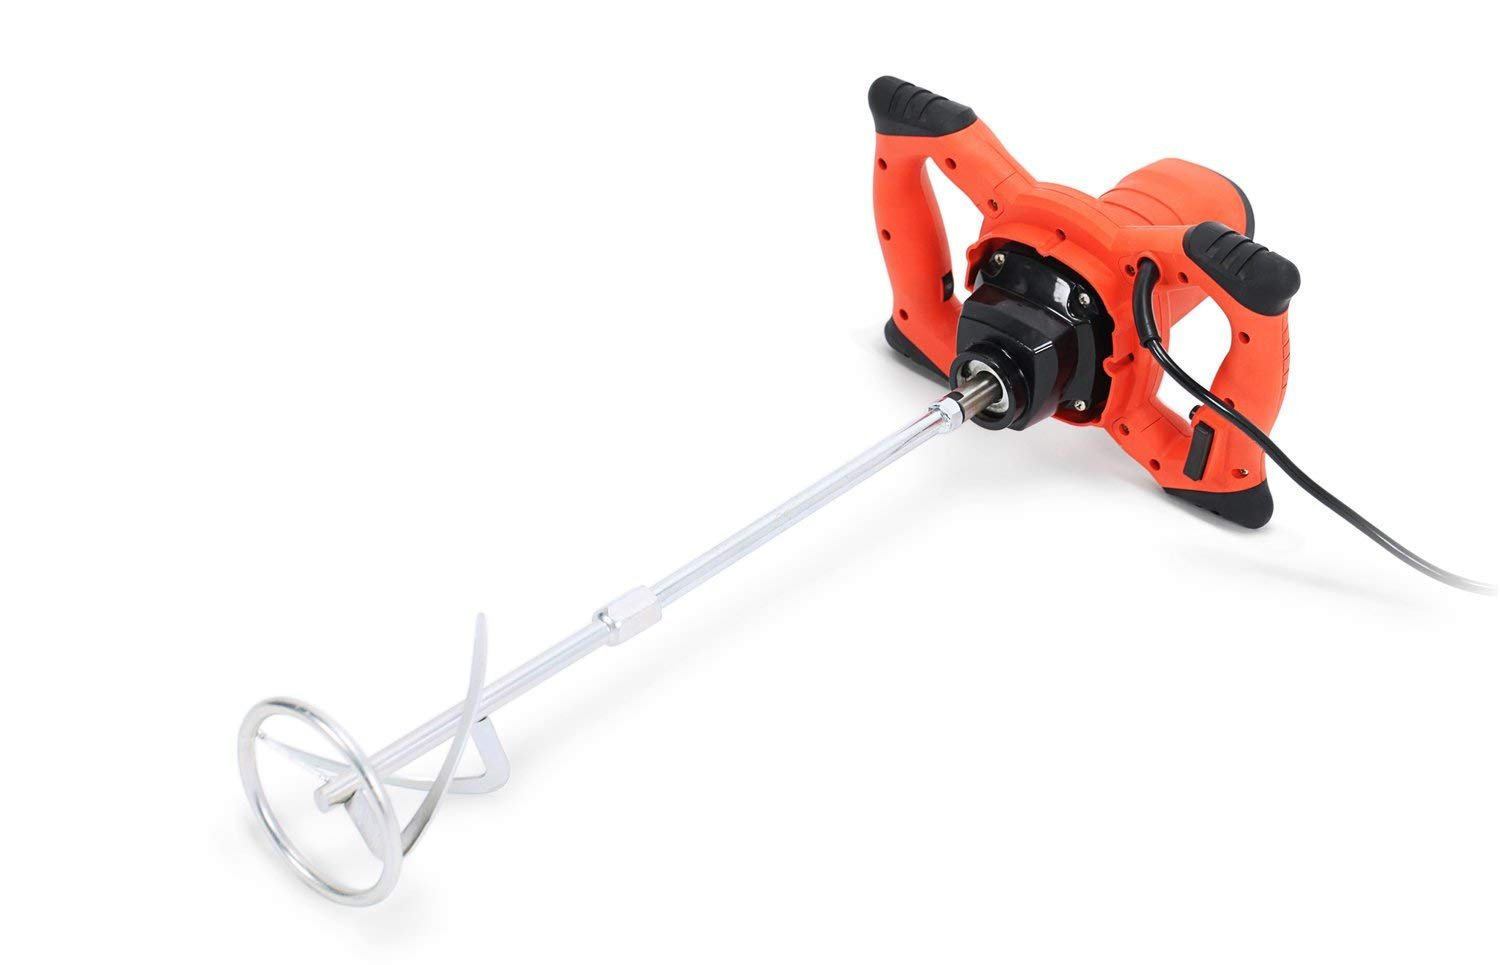 Electric Mortar Mixer 1500W Handheld Stirring Tool Dual High Low Gear Adjustable 6 Speed Paint Cement Grout 110V